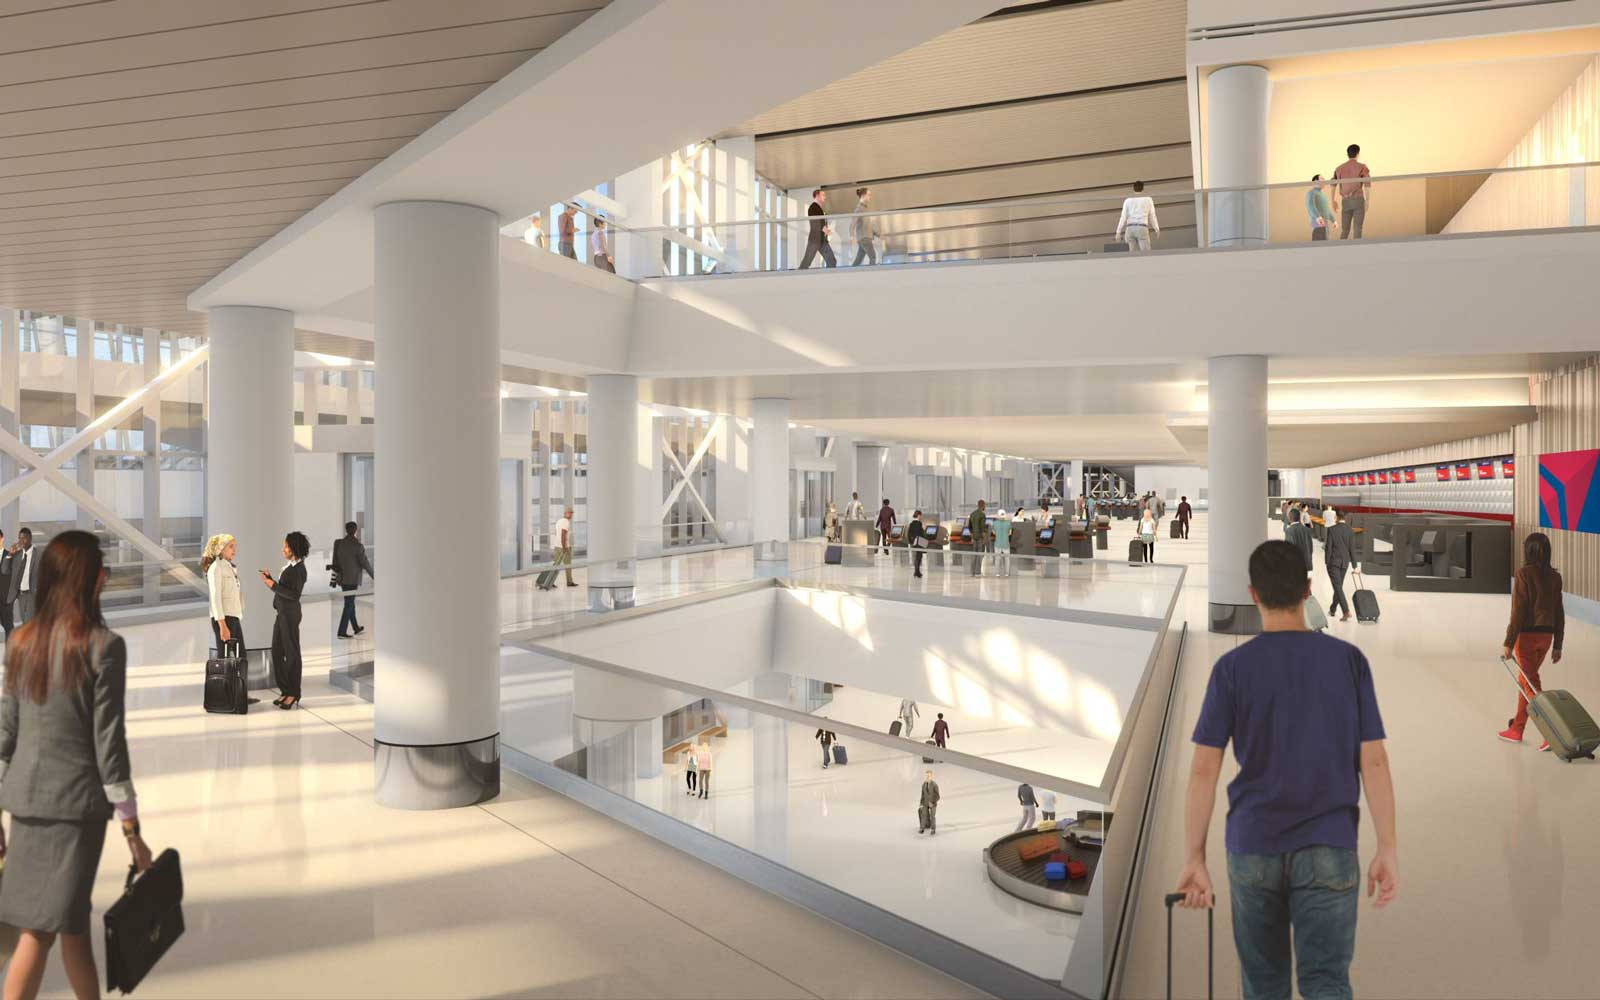 LaGuardia Airport Renderings